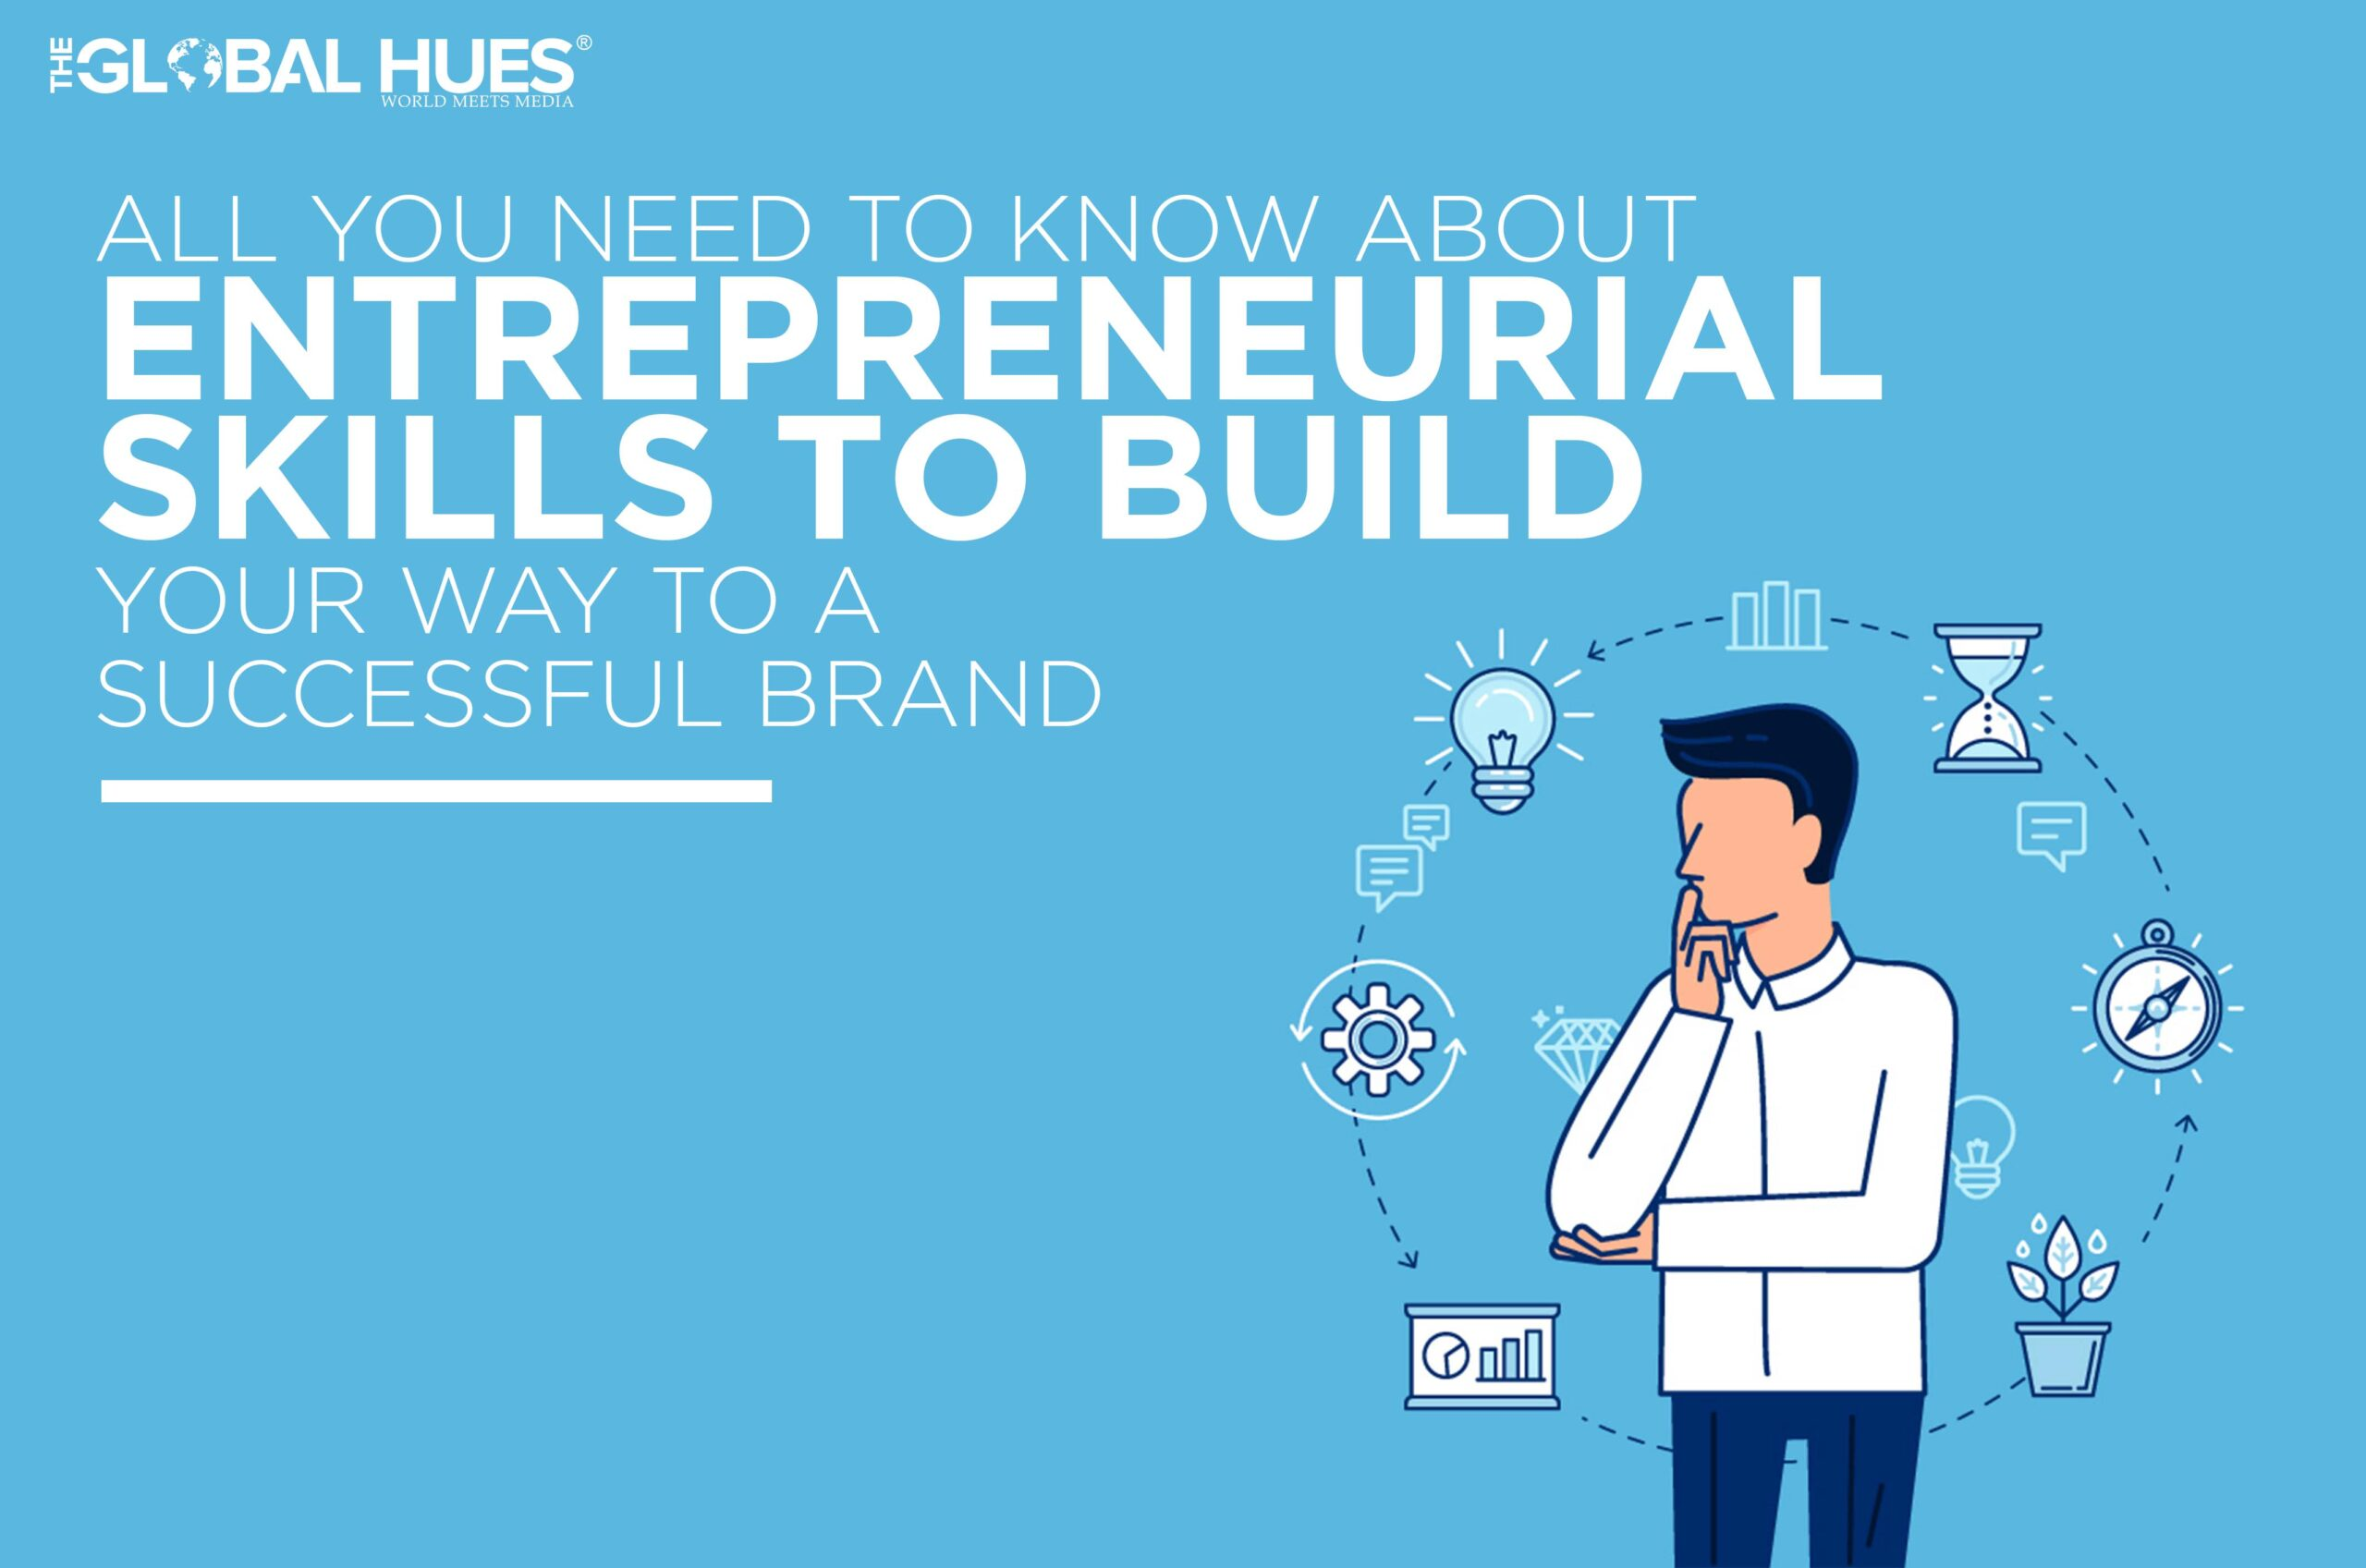 Entrepreneurial Skills To Build A Successful Brand